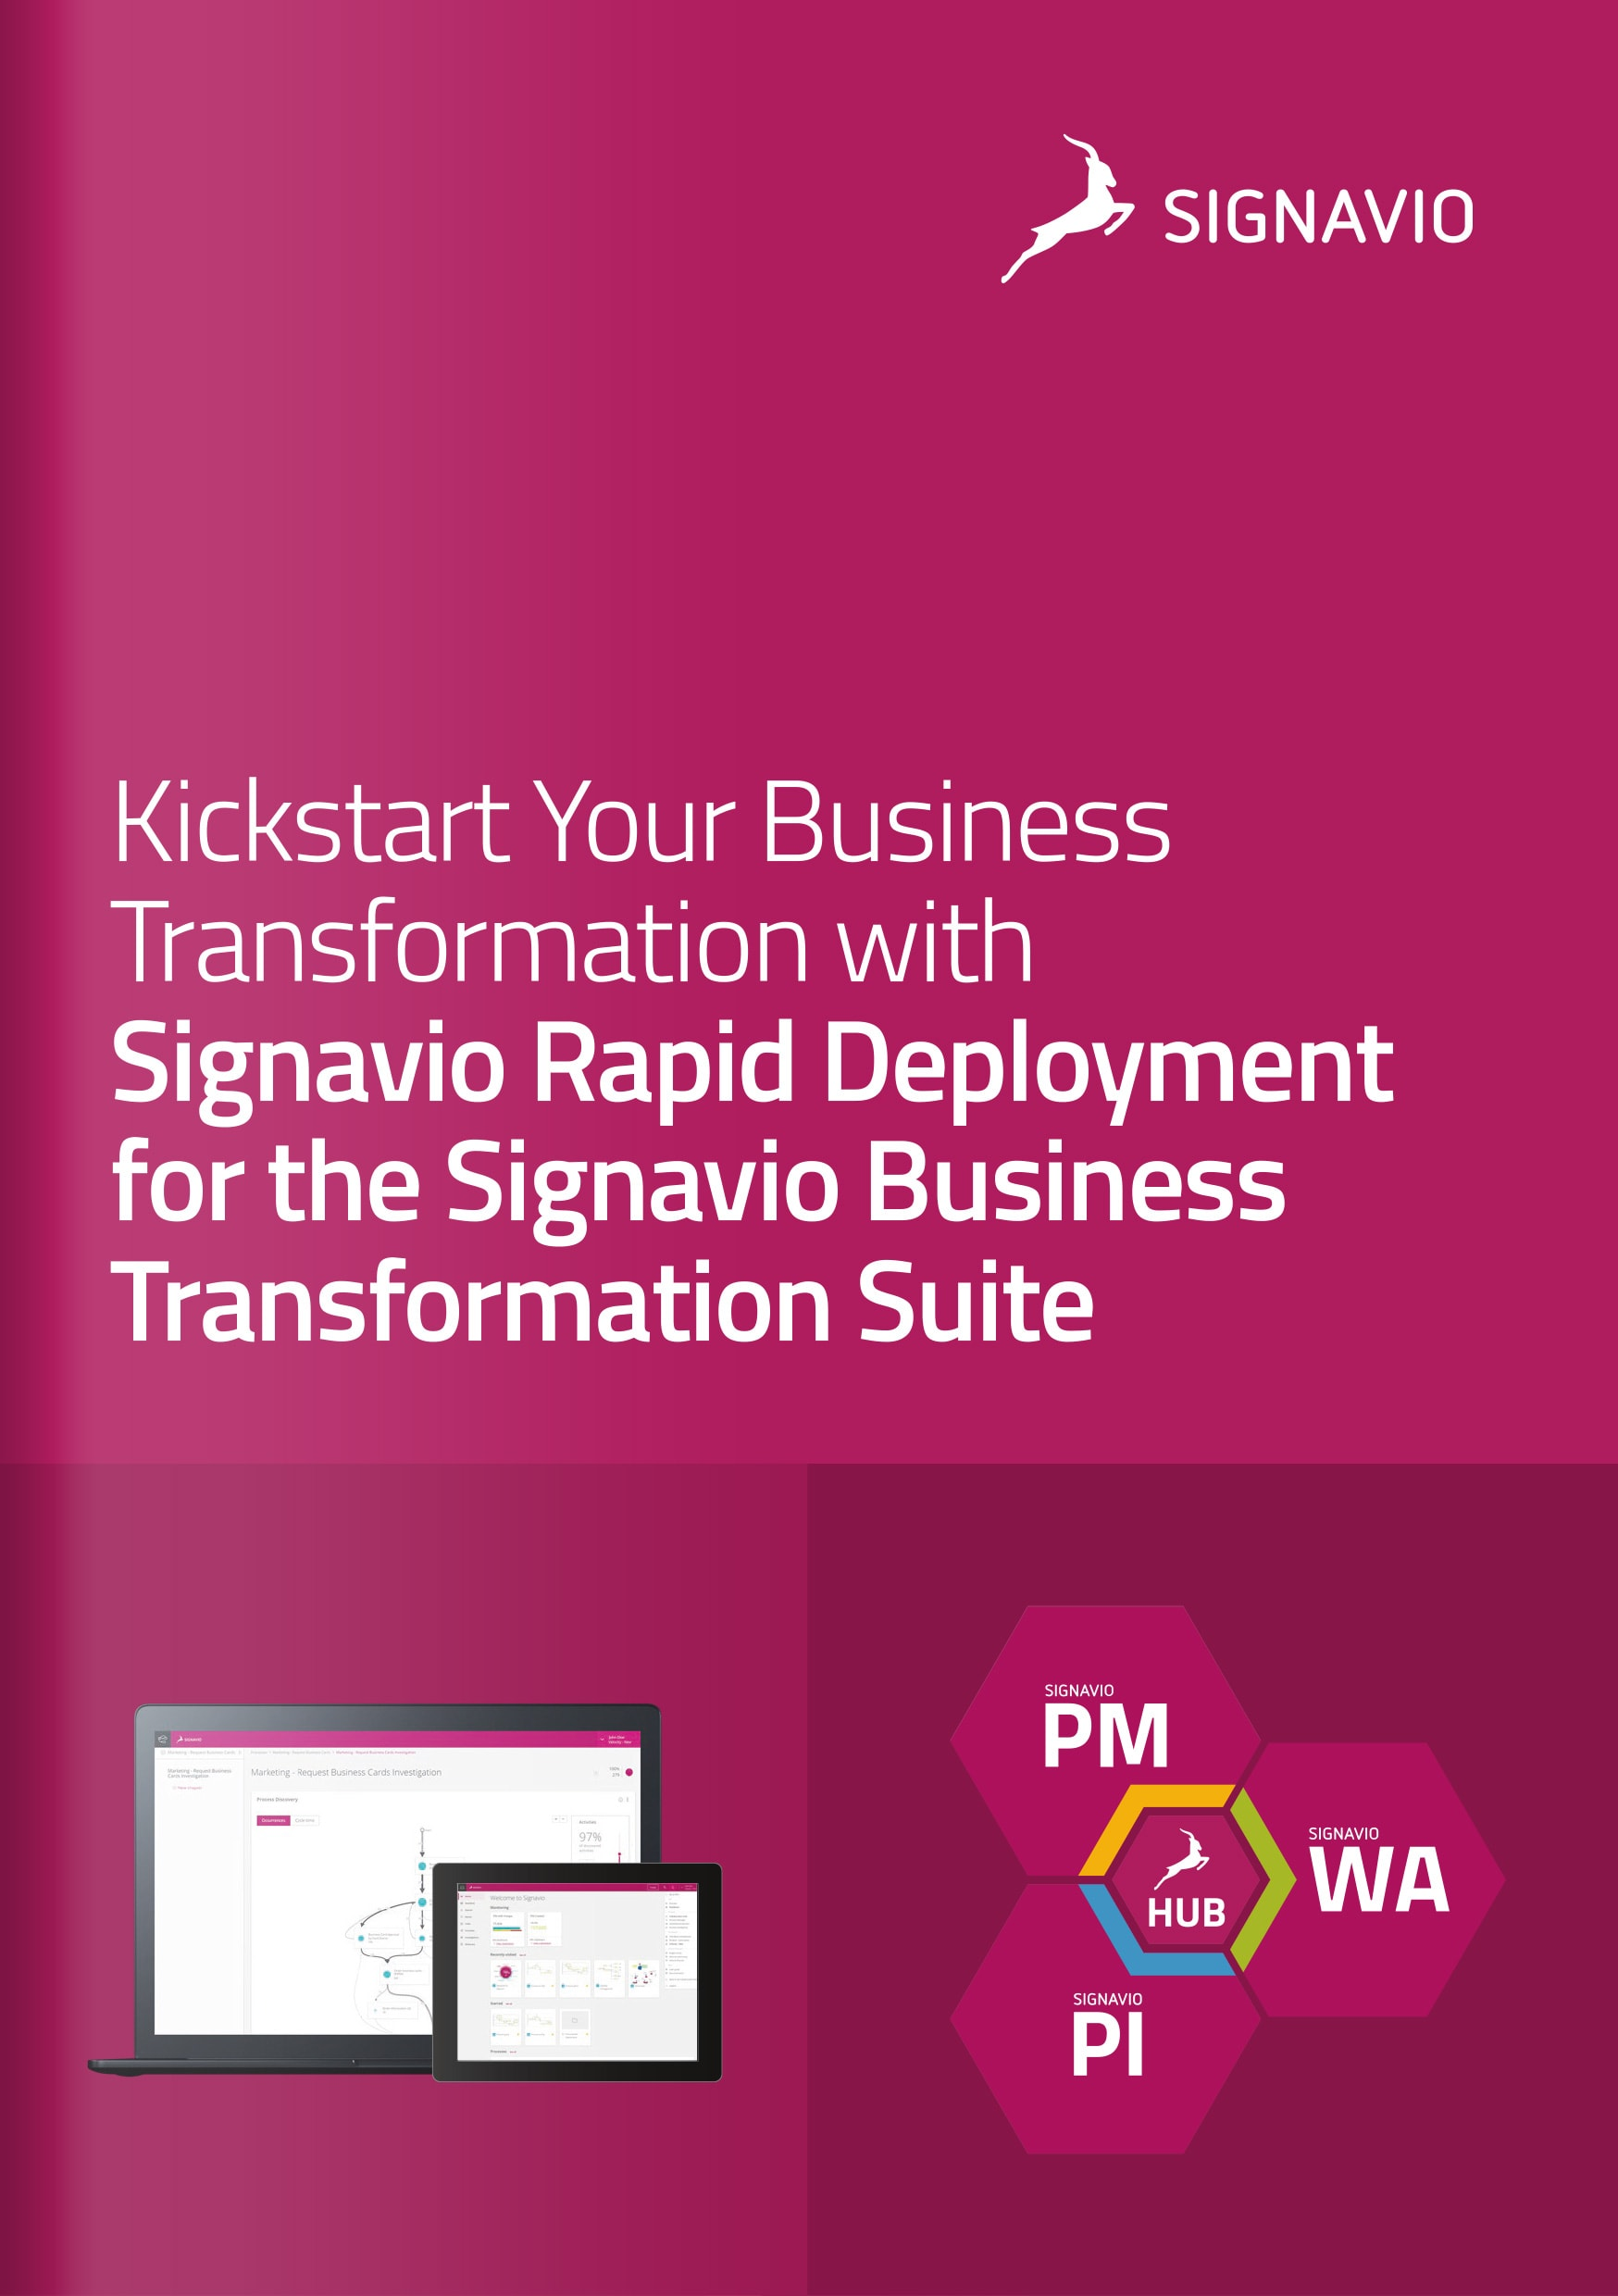 Signavio Rapid Deployment for the Signavio Business Transformation Suite- Cover Image